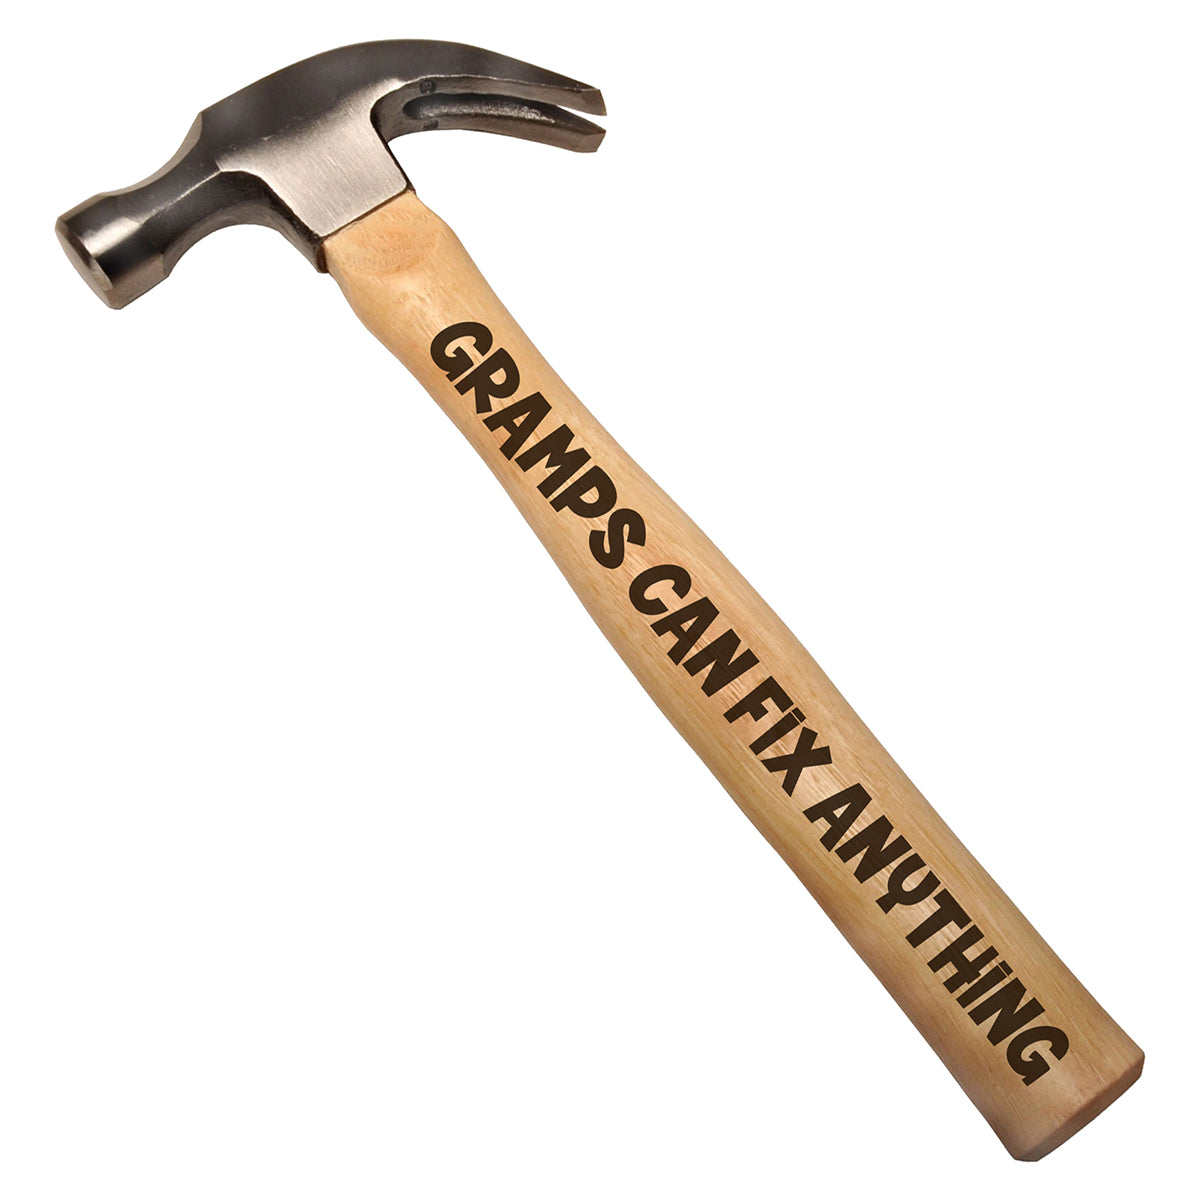 Gramps Can Fix Anything DIY Gift Engraved Wood Handle Steel Hammer